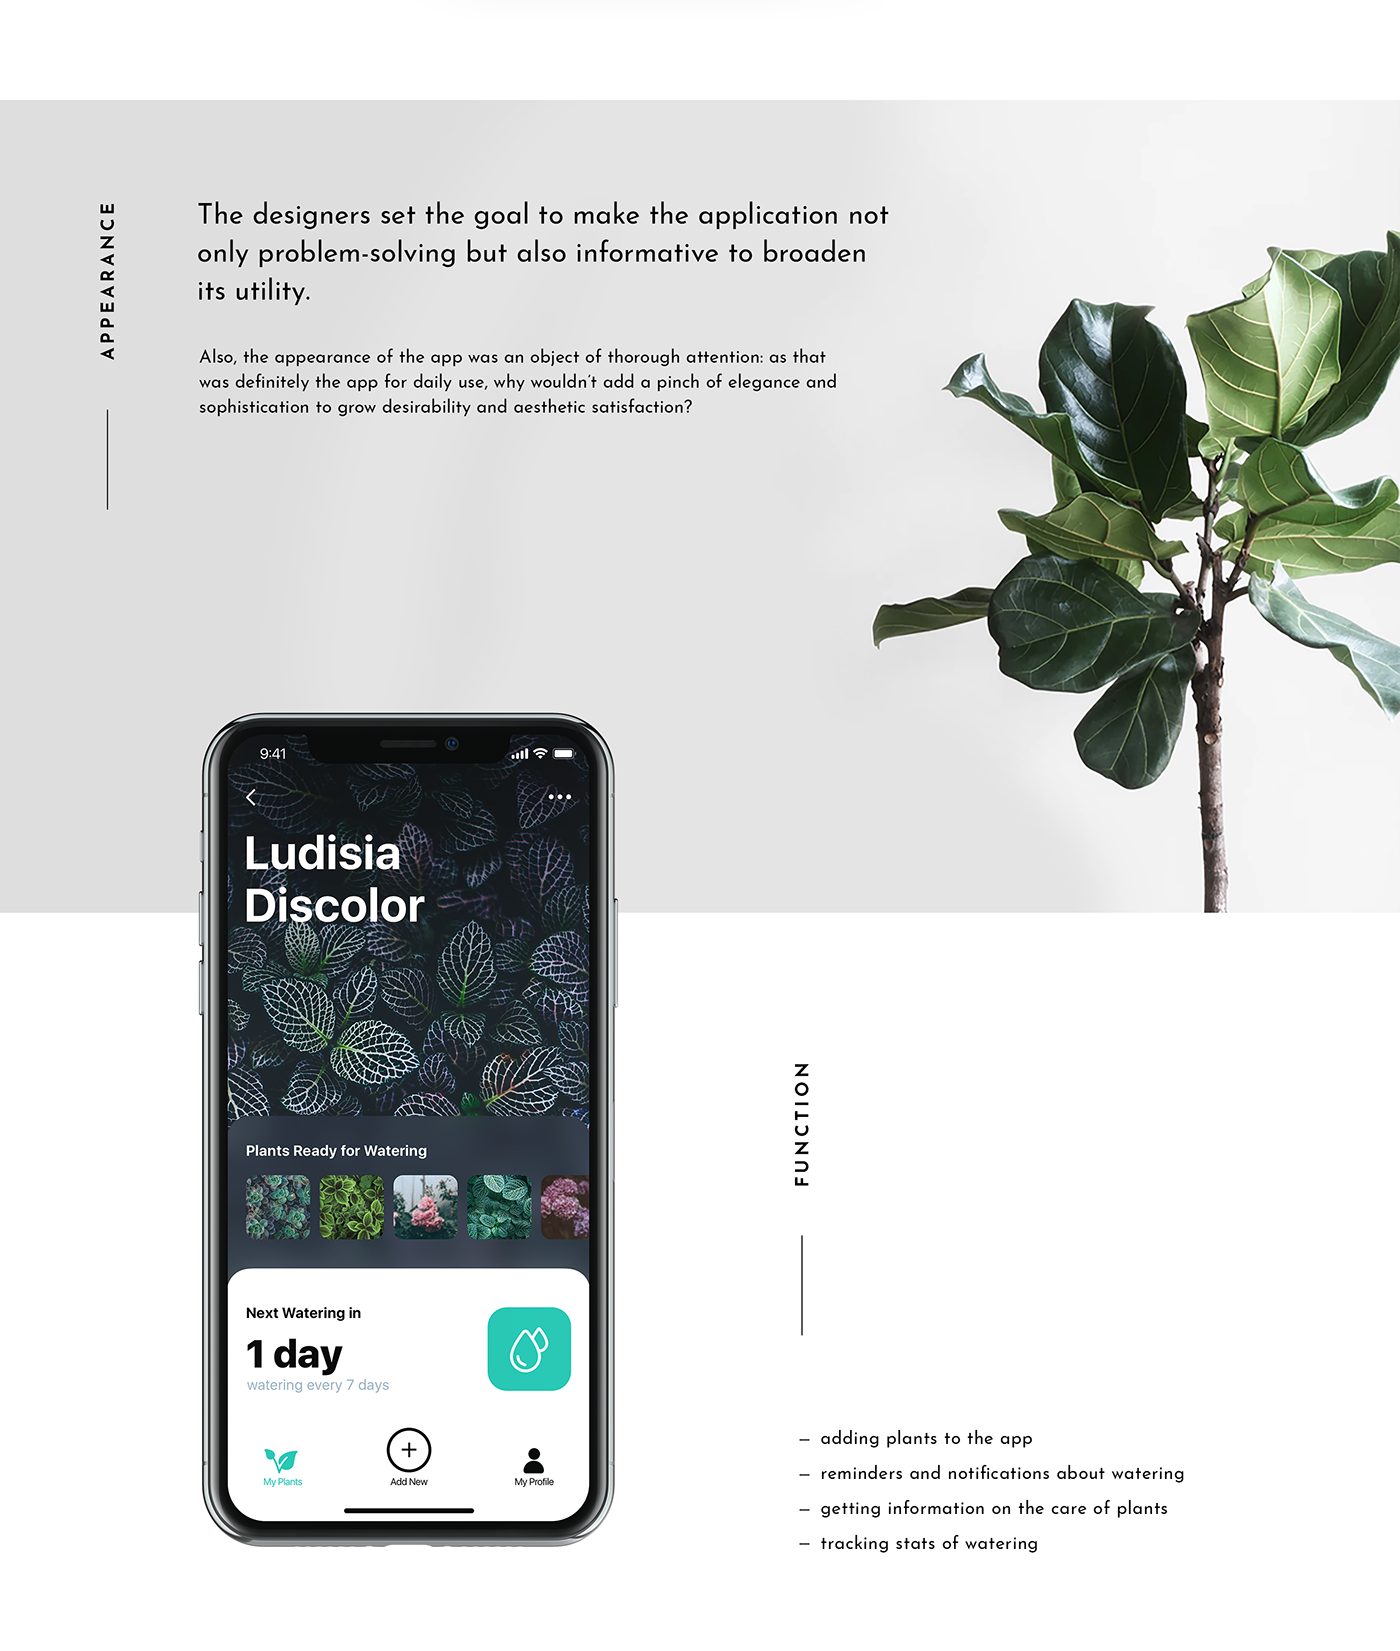 Mobile UI Design: Watering Tracker  App for Home Needs on